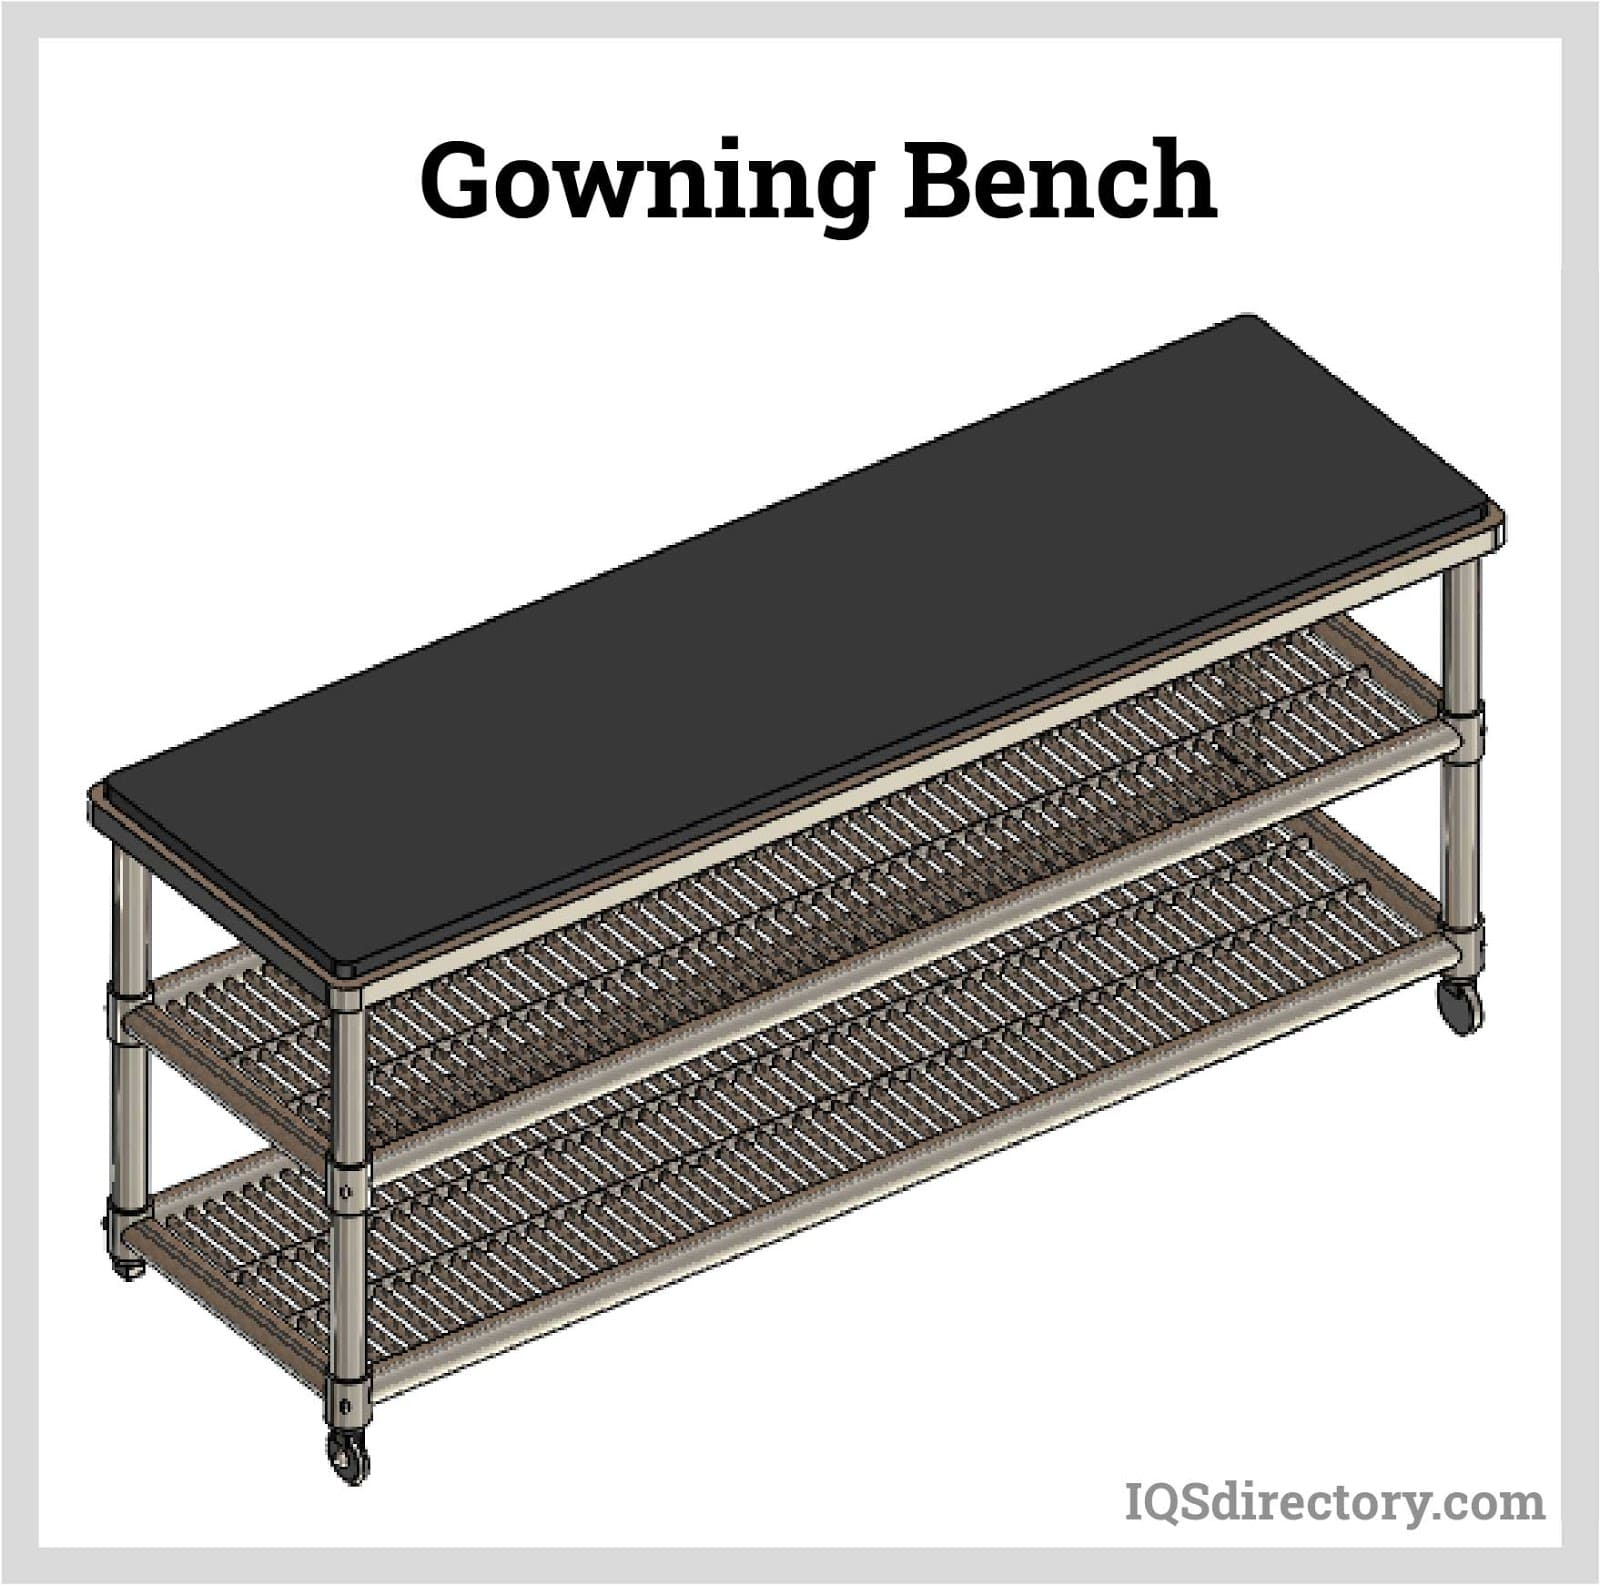 Gowning Bench